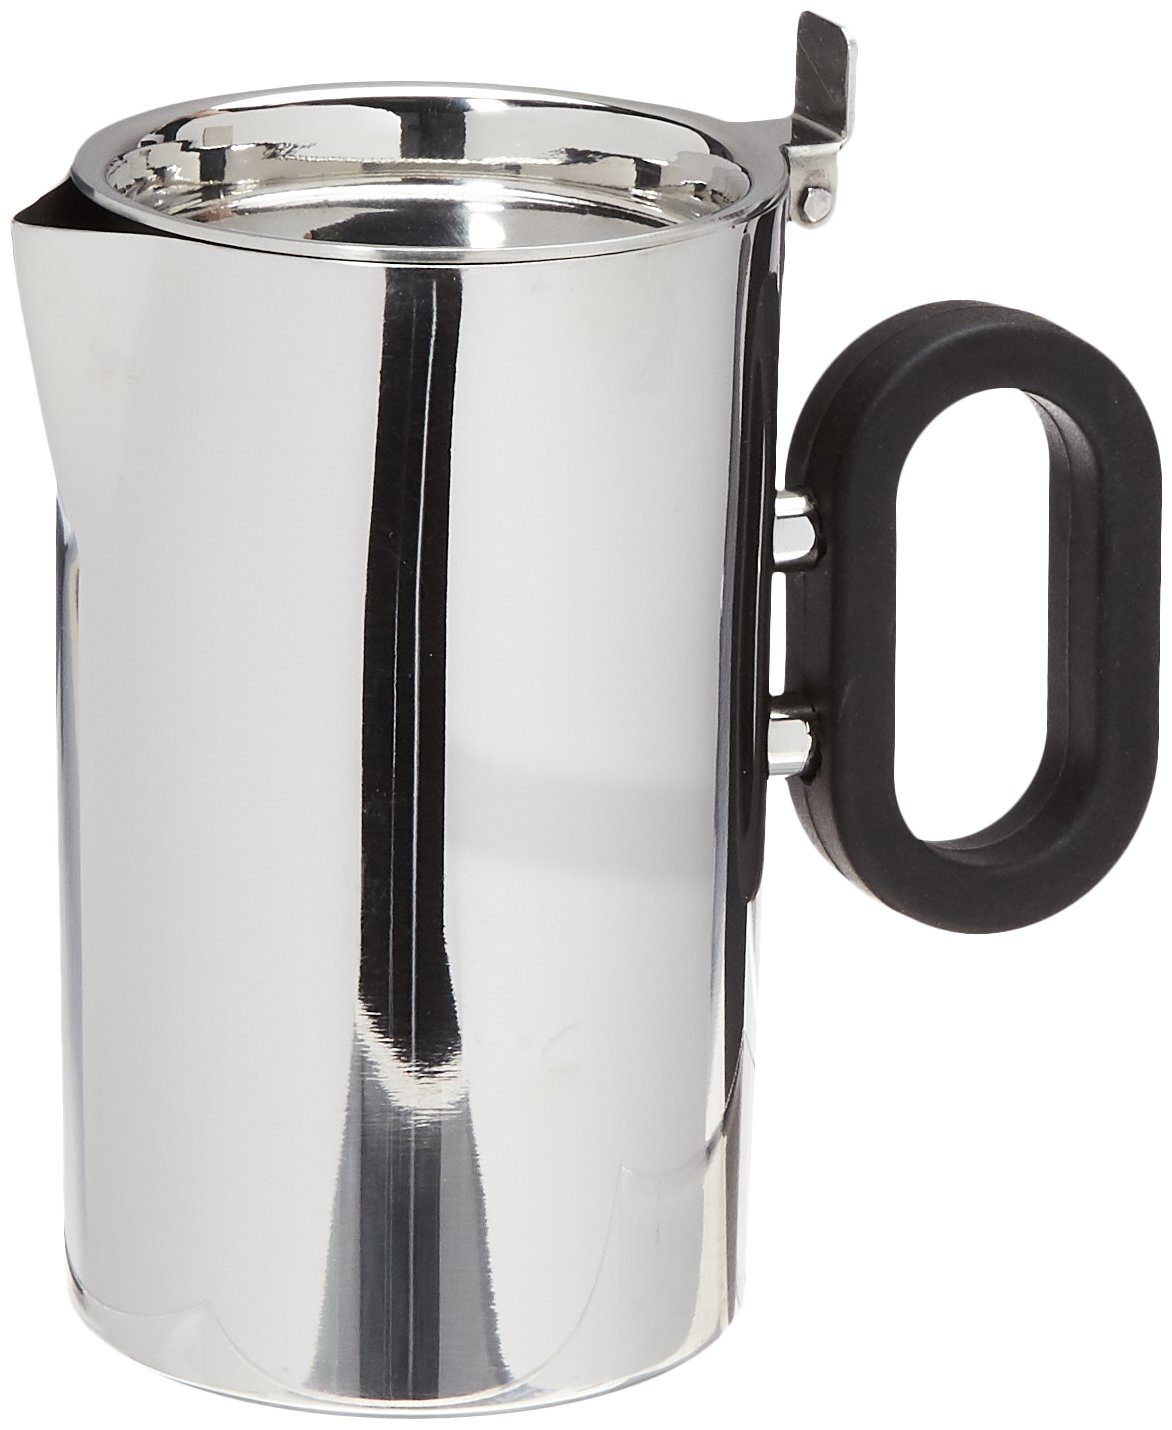 Mod18 Steelworks SM-26 Double Wall Creamer, 9 oz., Polished Stainless